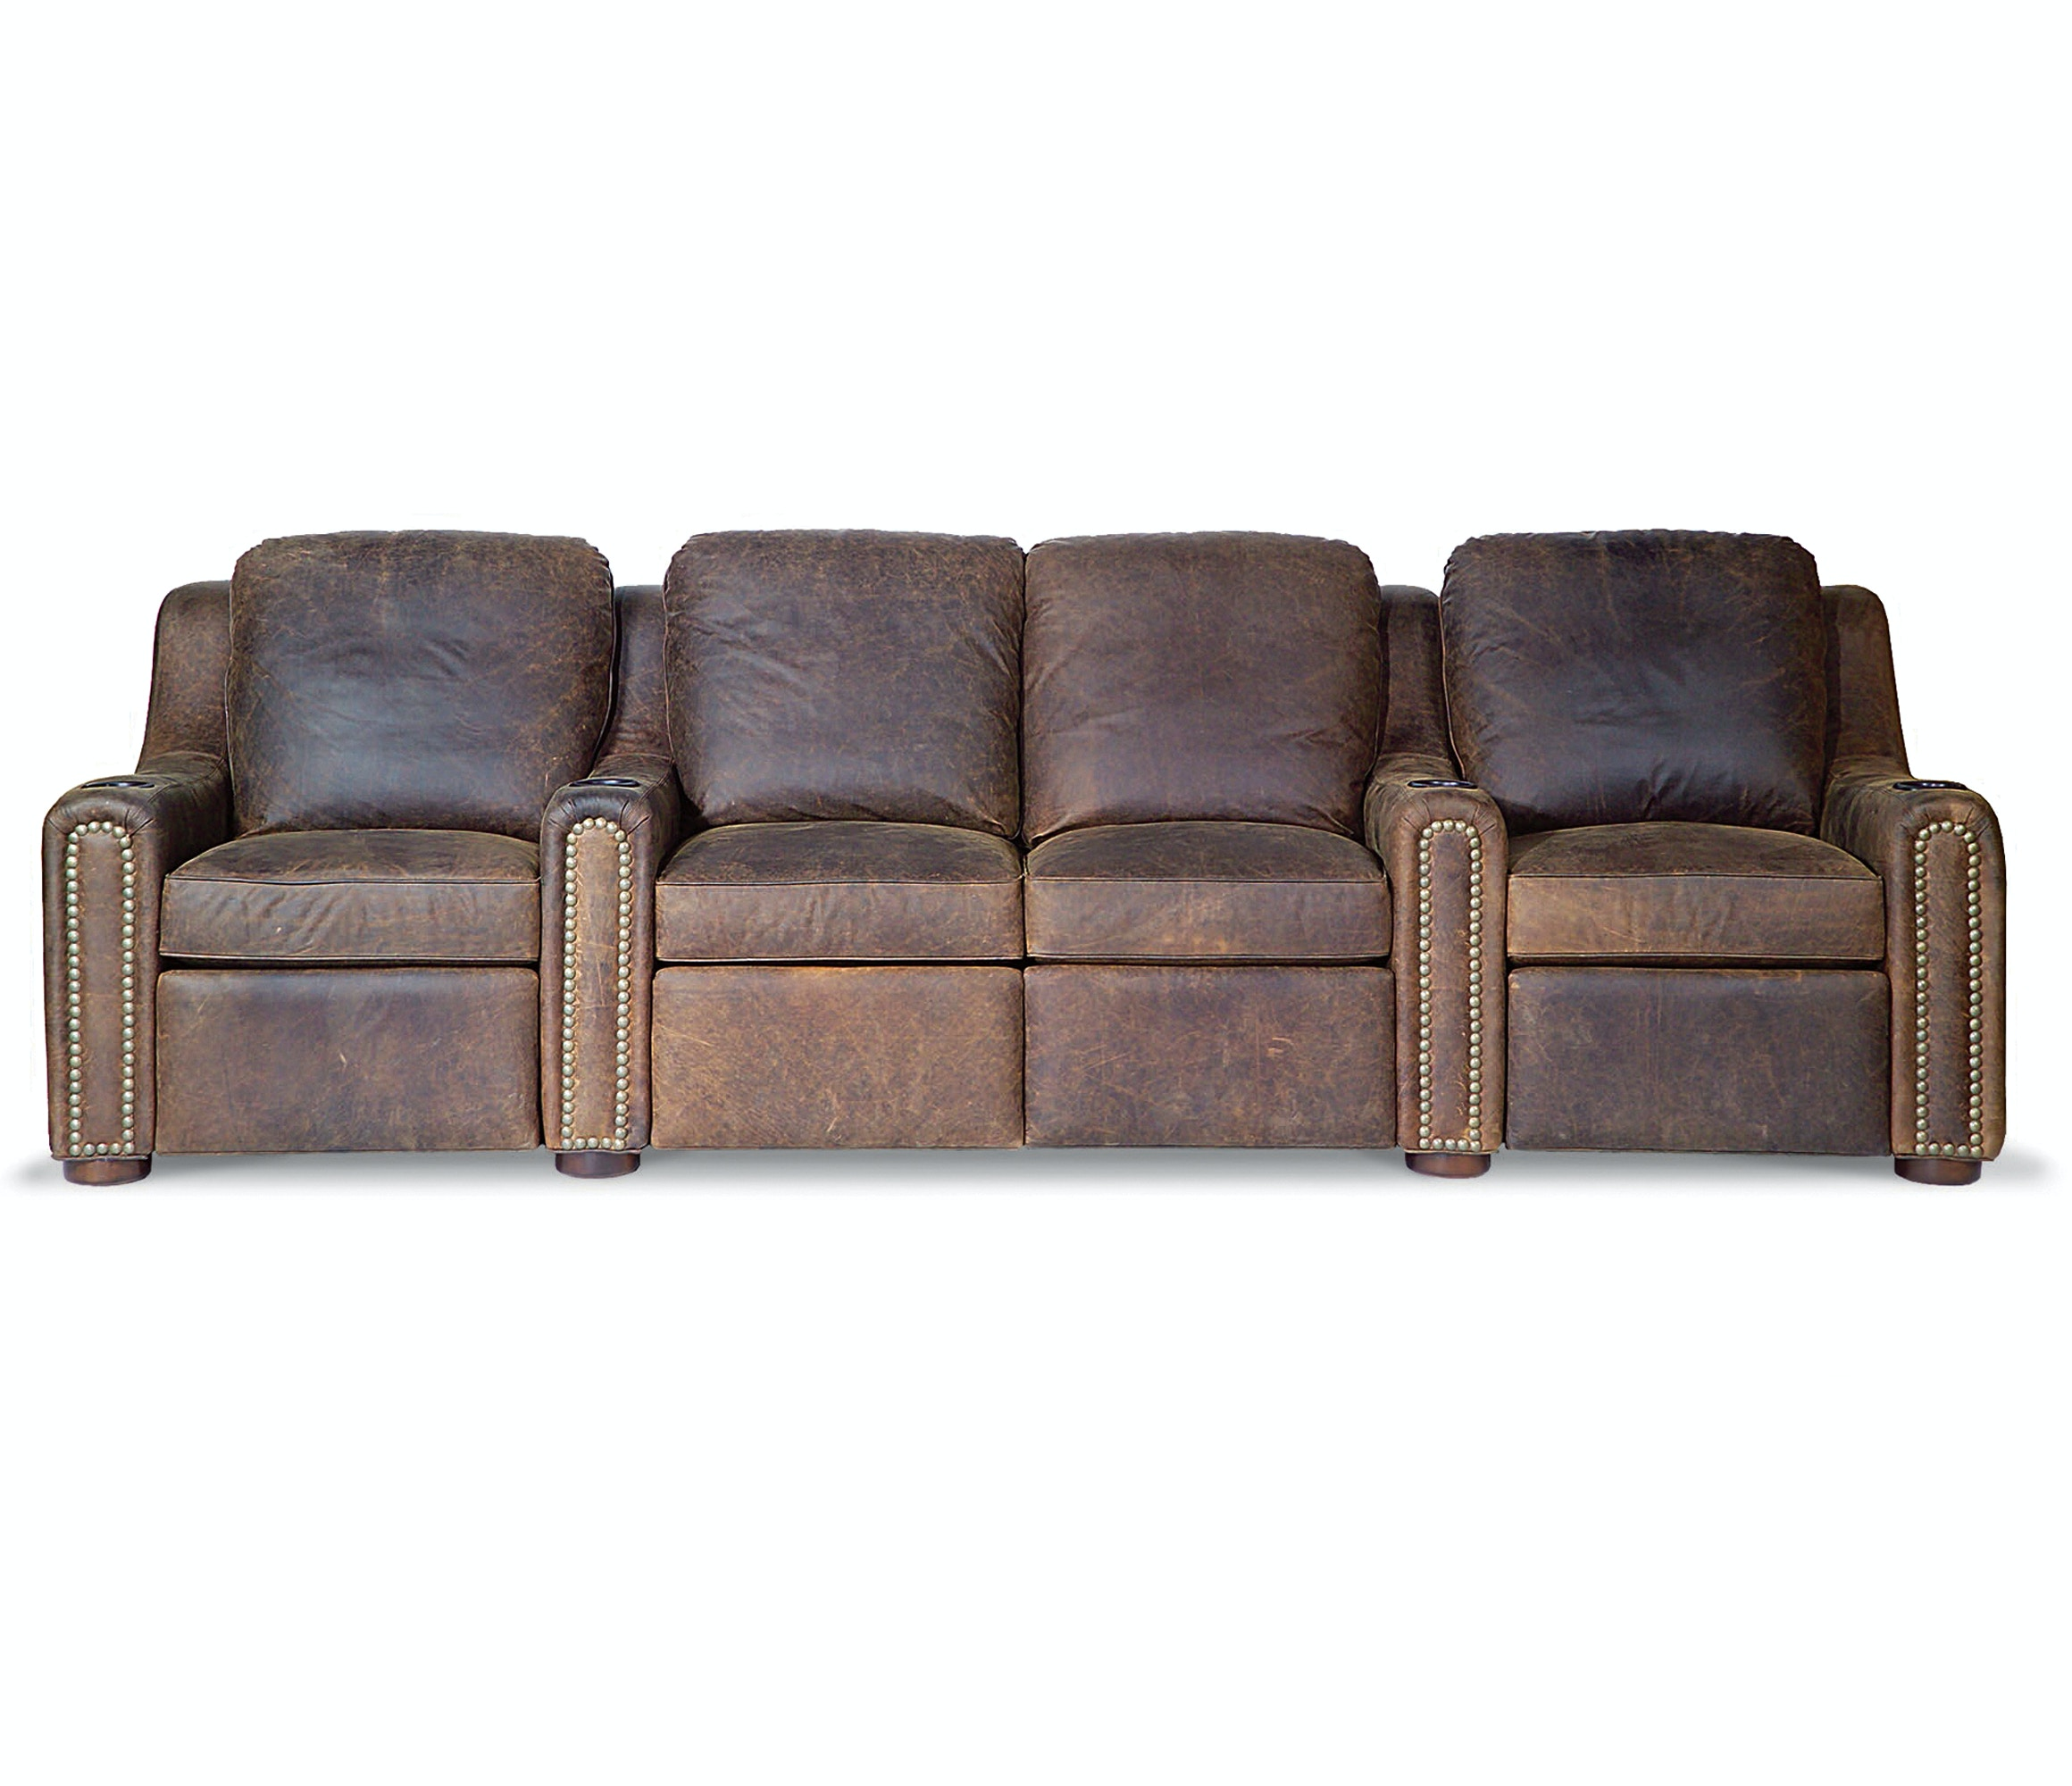 Taylor King Furniture Home Theater Goods Home Furnishings